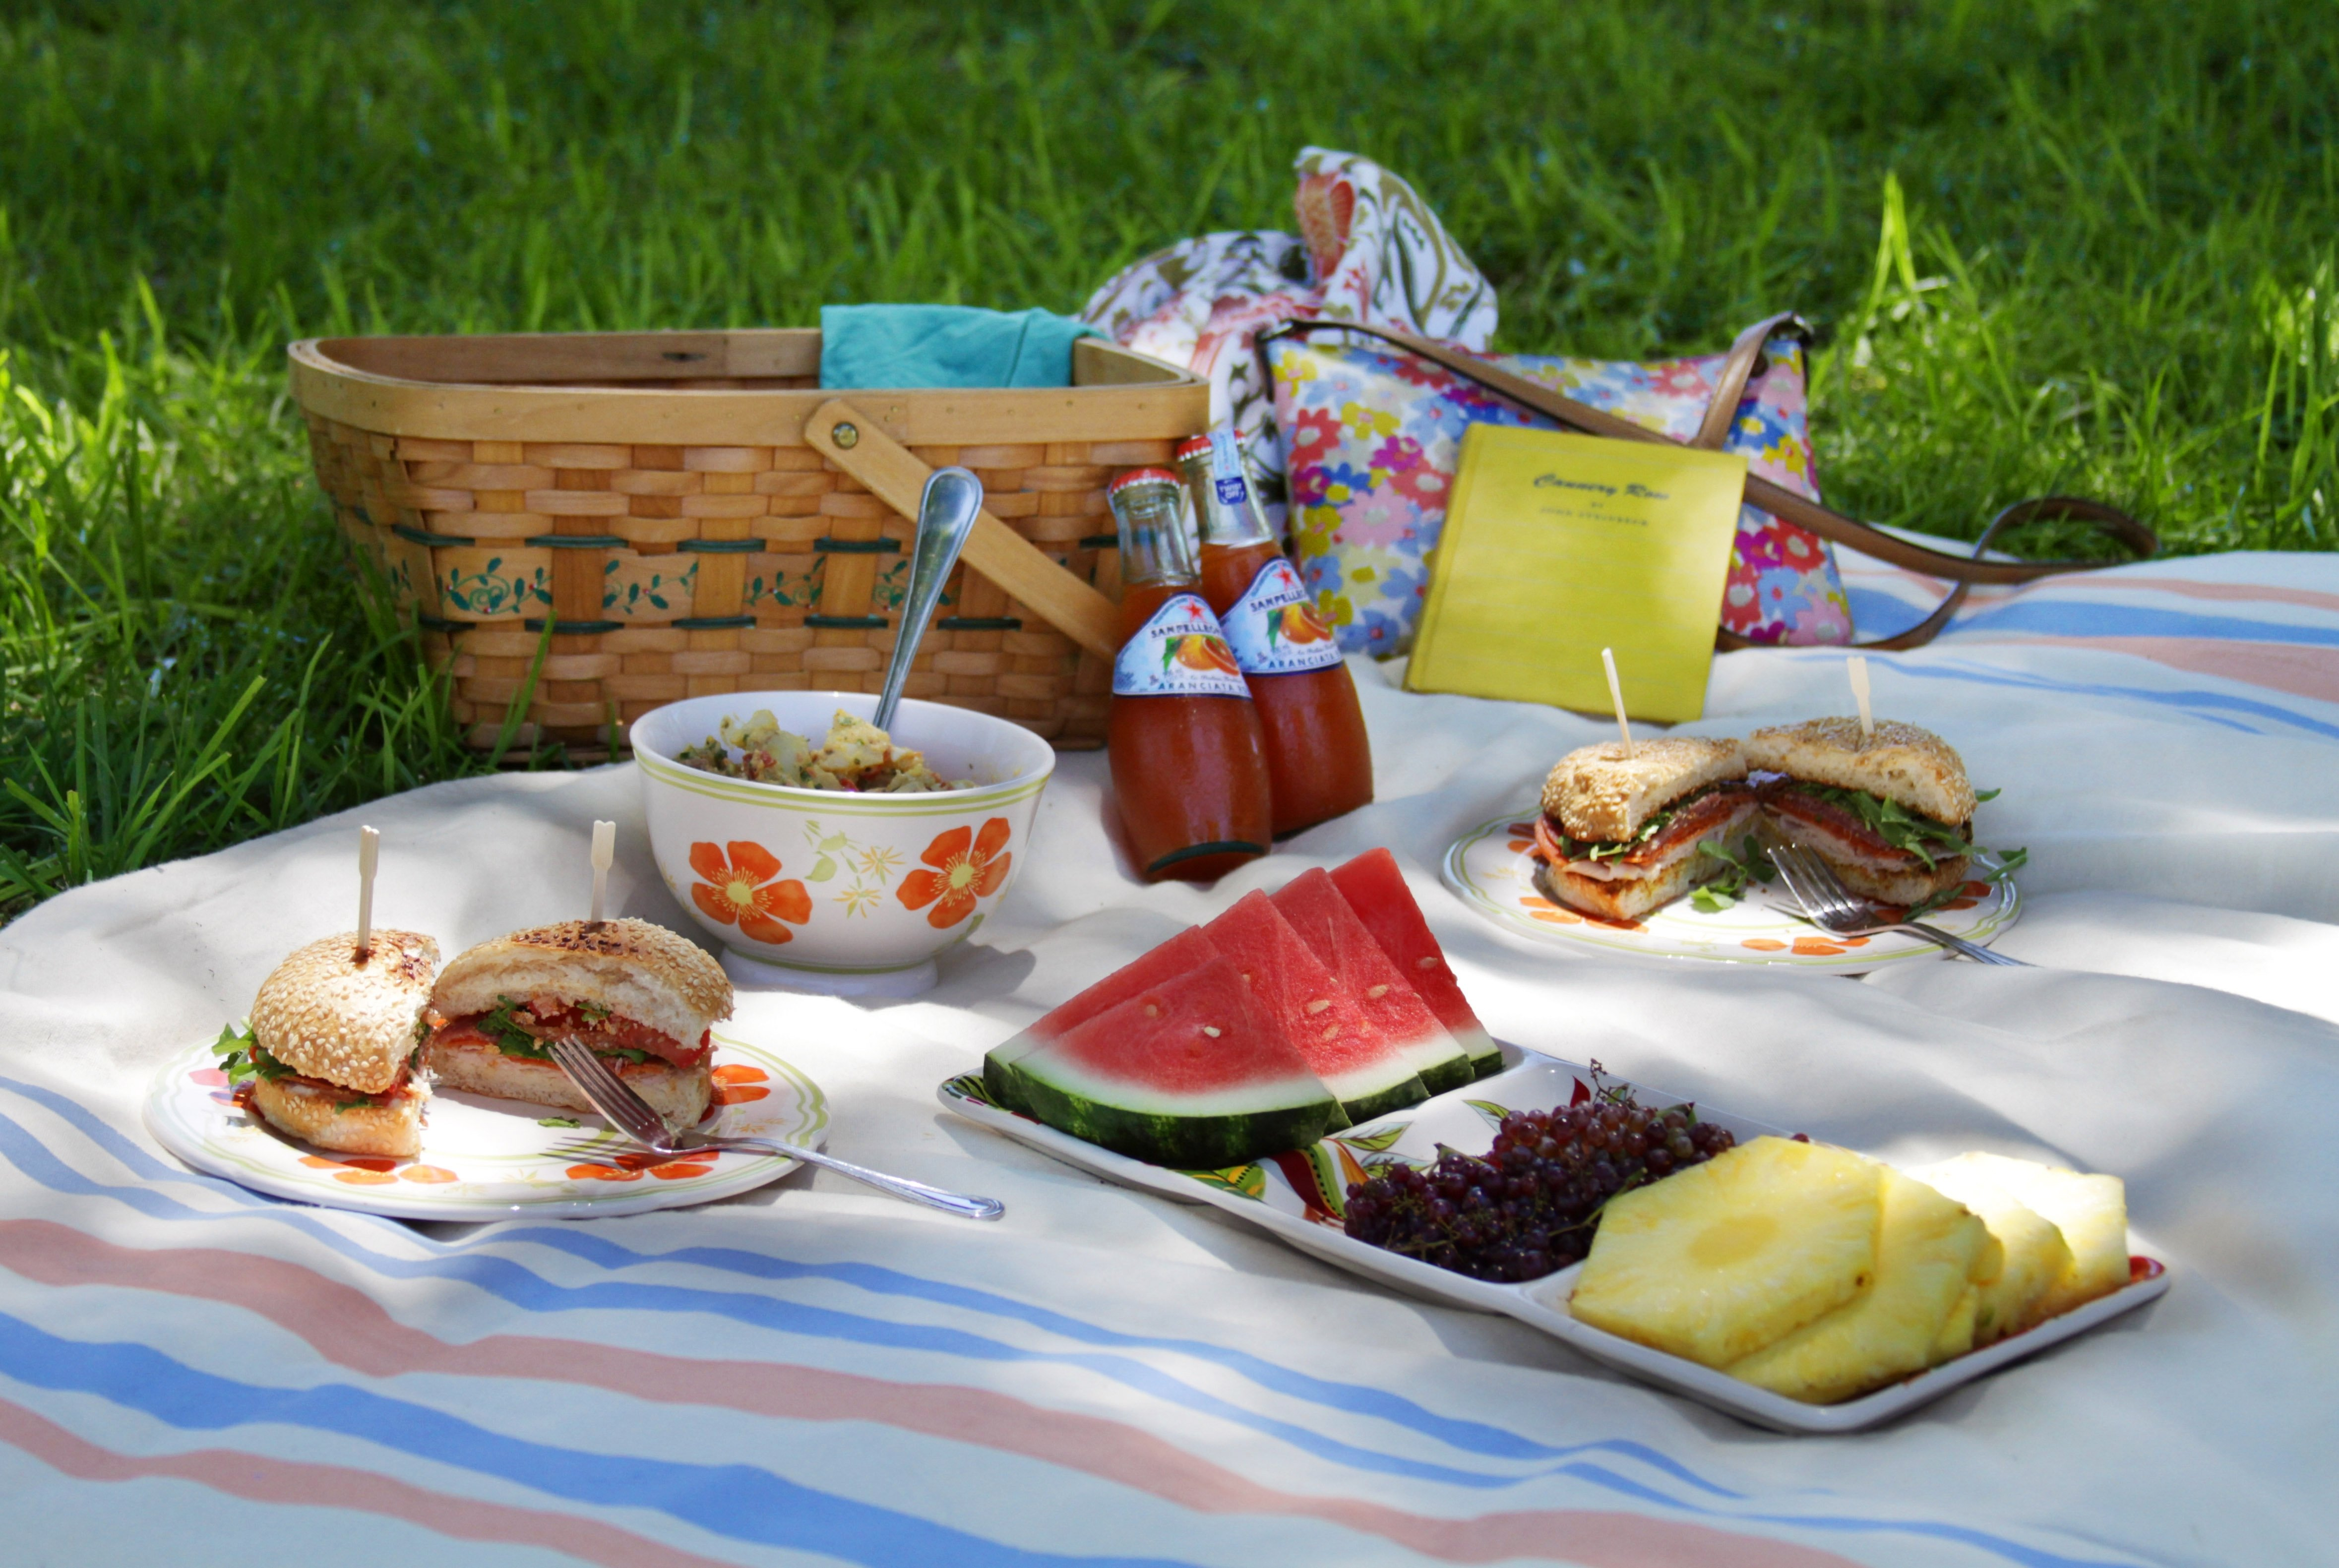 10 Trendy Picnic In The Park Ideas picnic ideas the sage owl 1